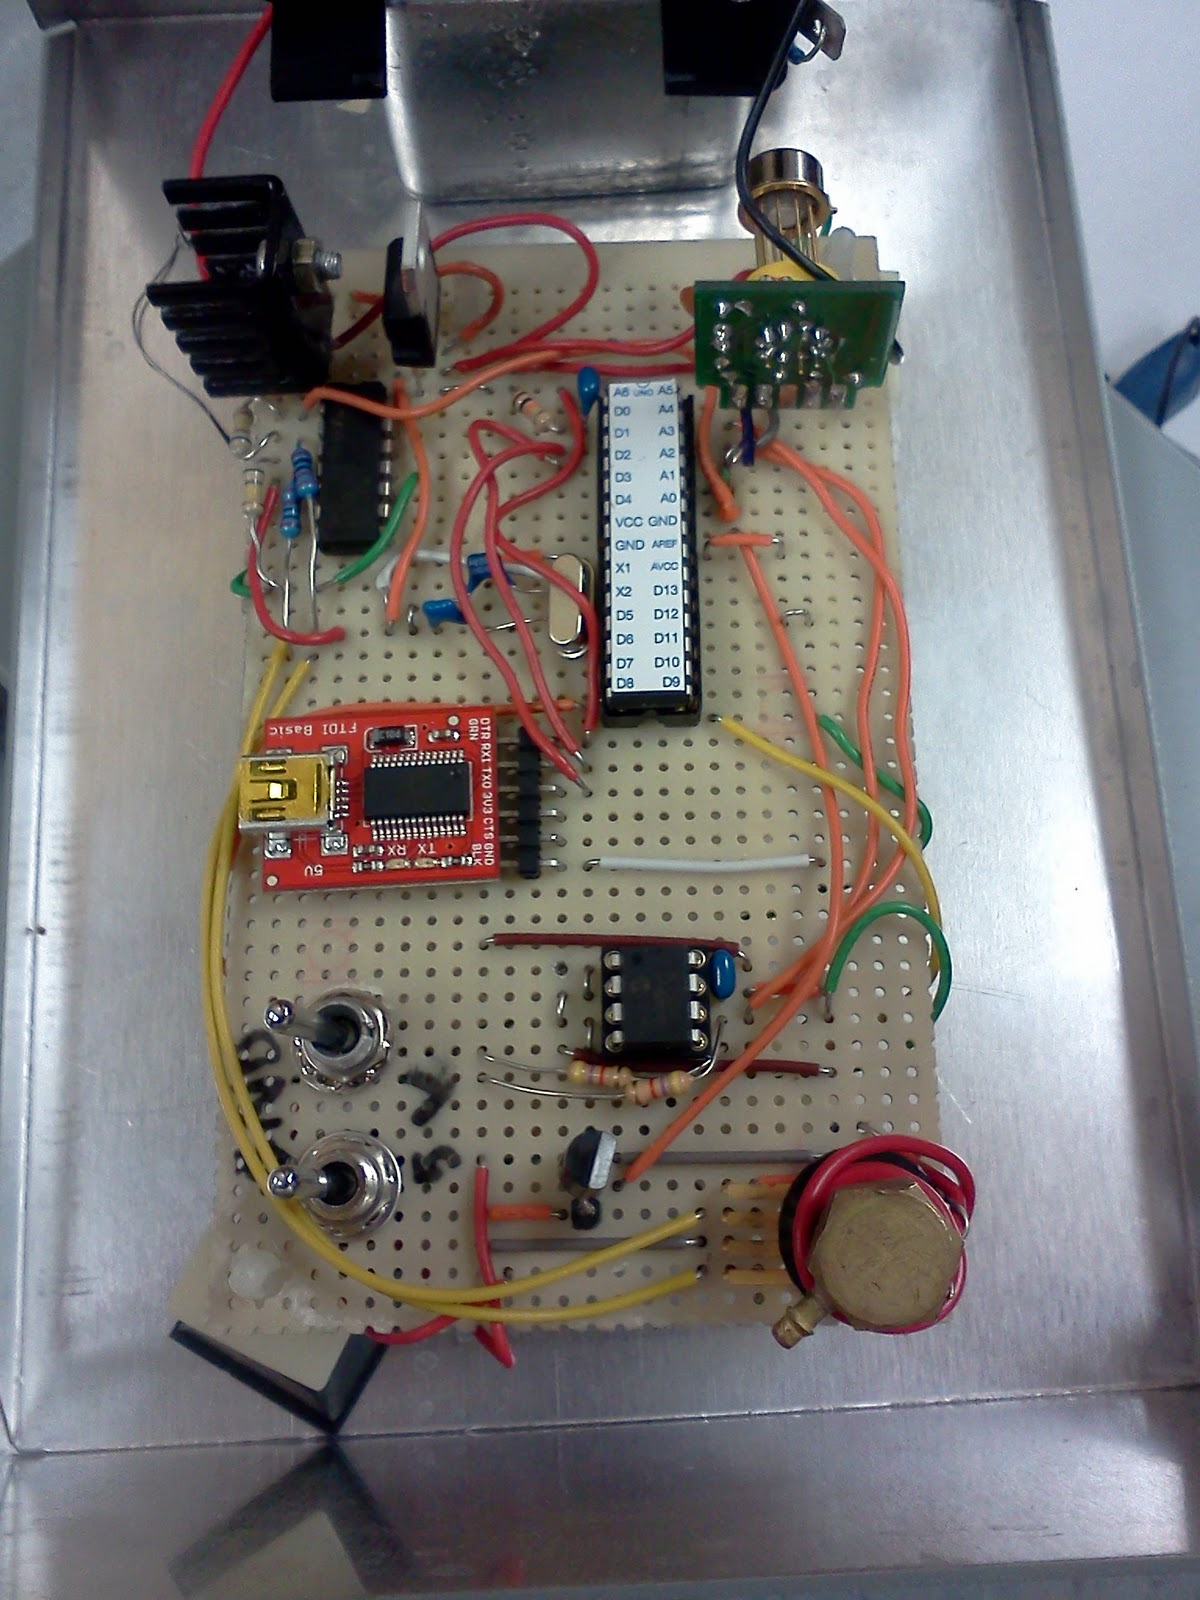 Tru Physics 448 Weather Balloon January 2012 5 Volt Voltage Regulator Circuit Below Is The Trackuino This Designed To Get Gps Signal And Send It Over Aprs Network Can Also Transmit Temperature Other Data Aswell